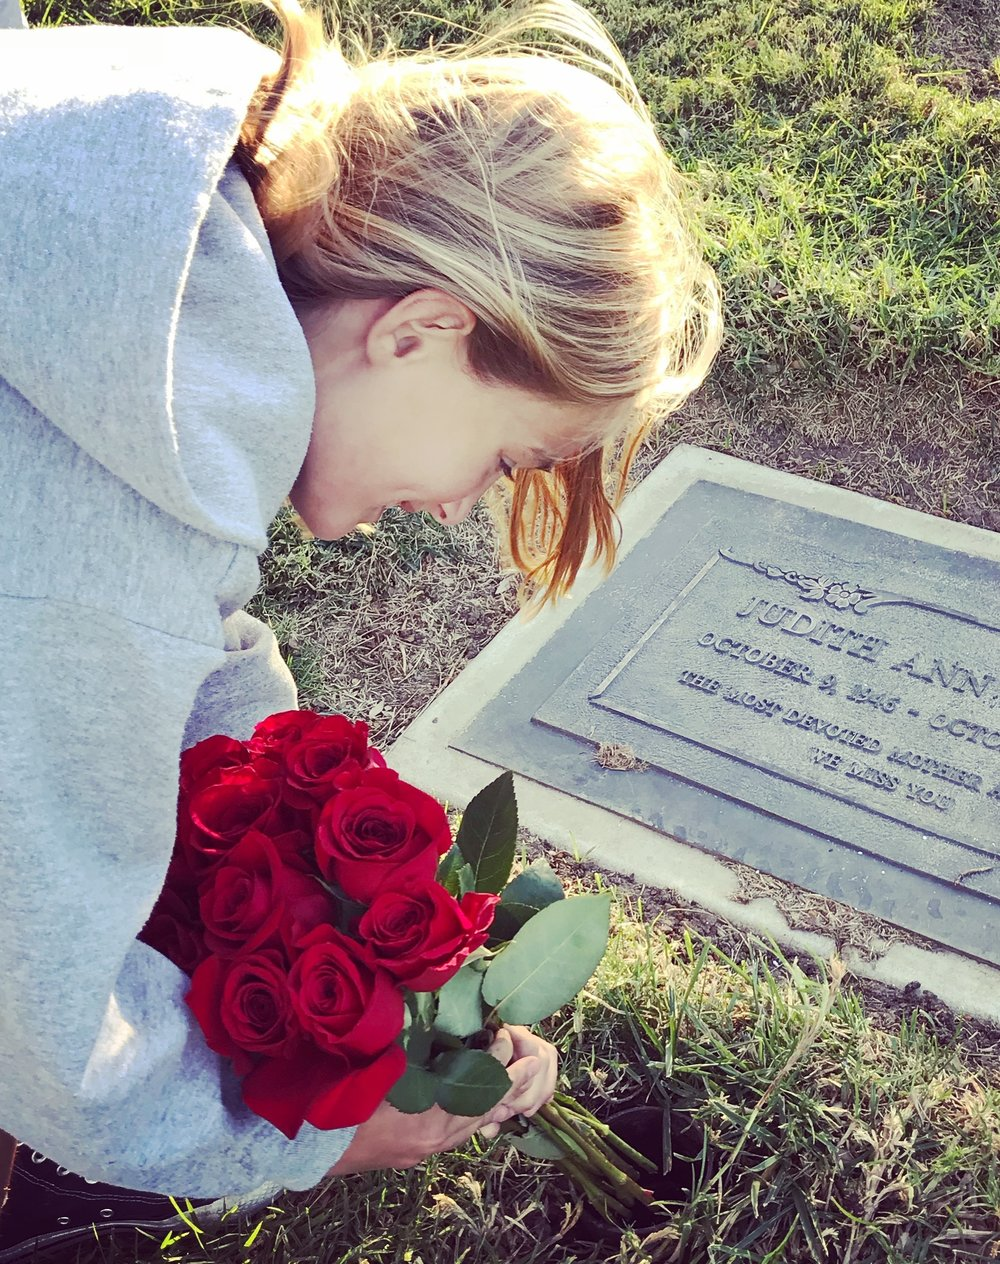 My daughter leaving flowers for her grandmother on her birthday yesterday - Now ten years old, she was born three months after my mom died.